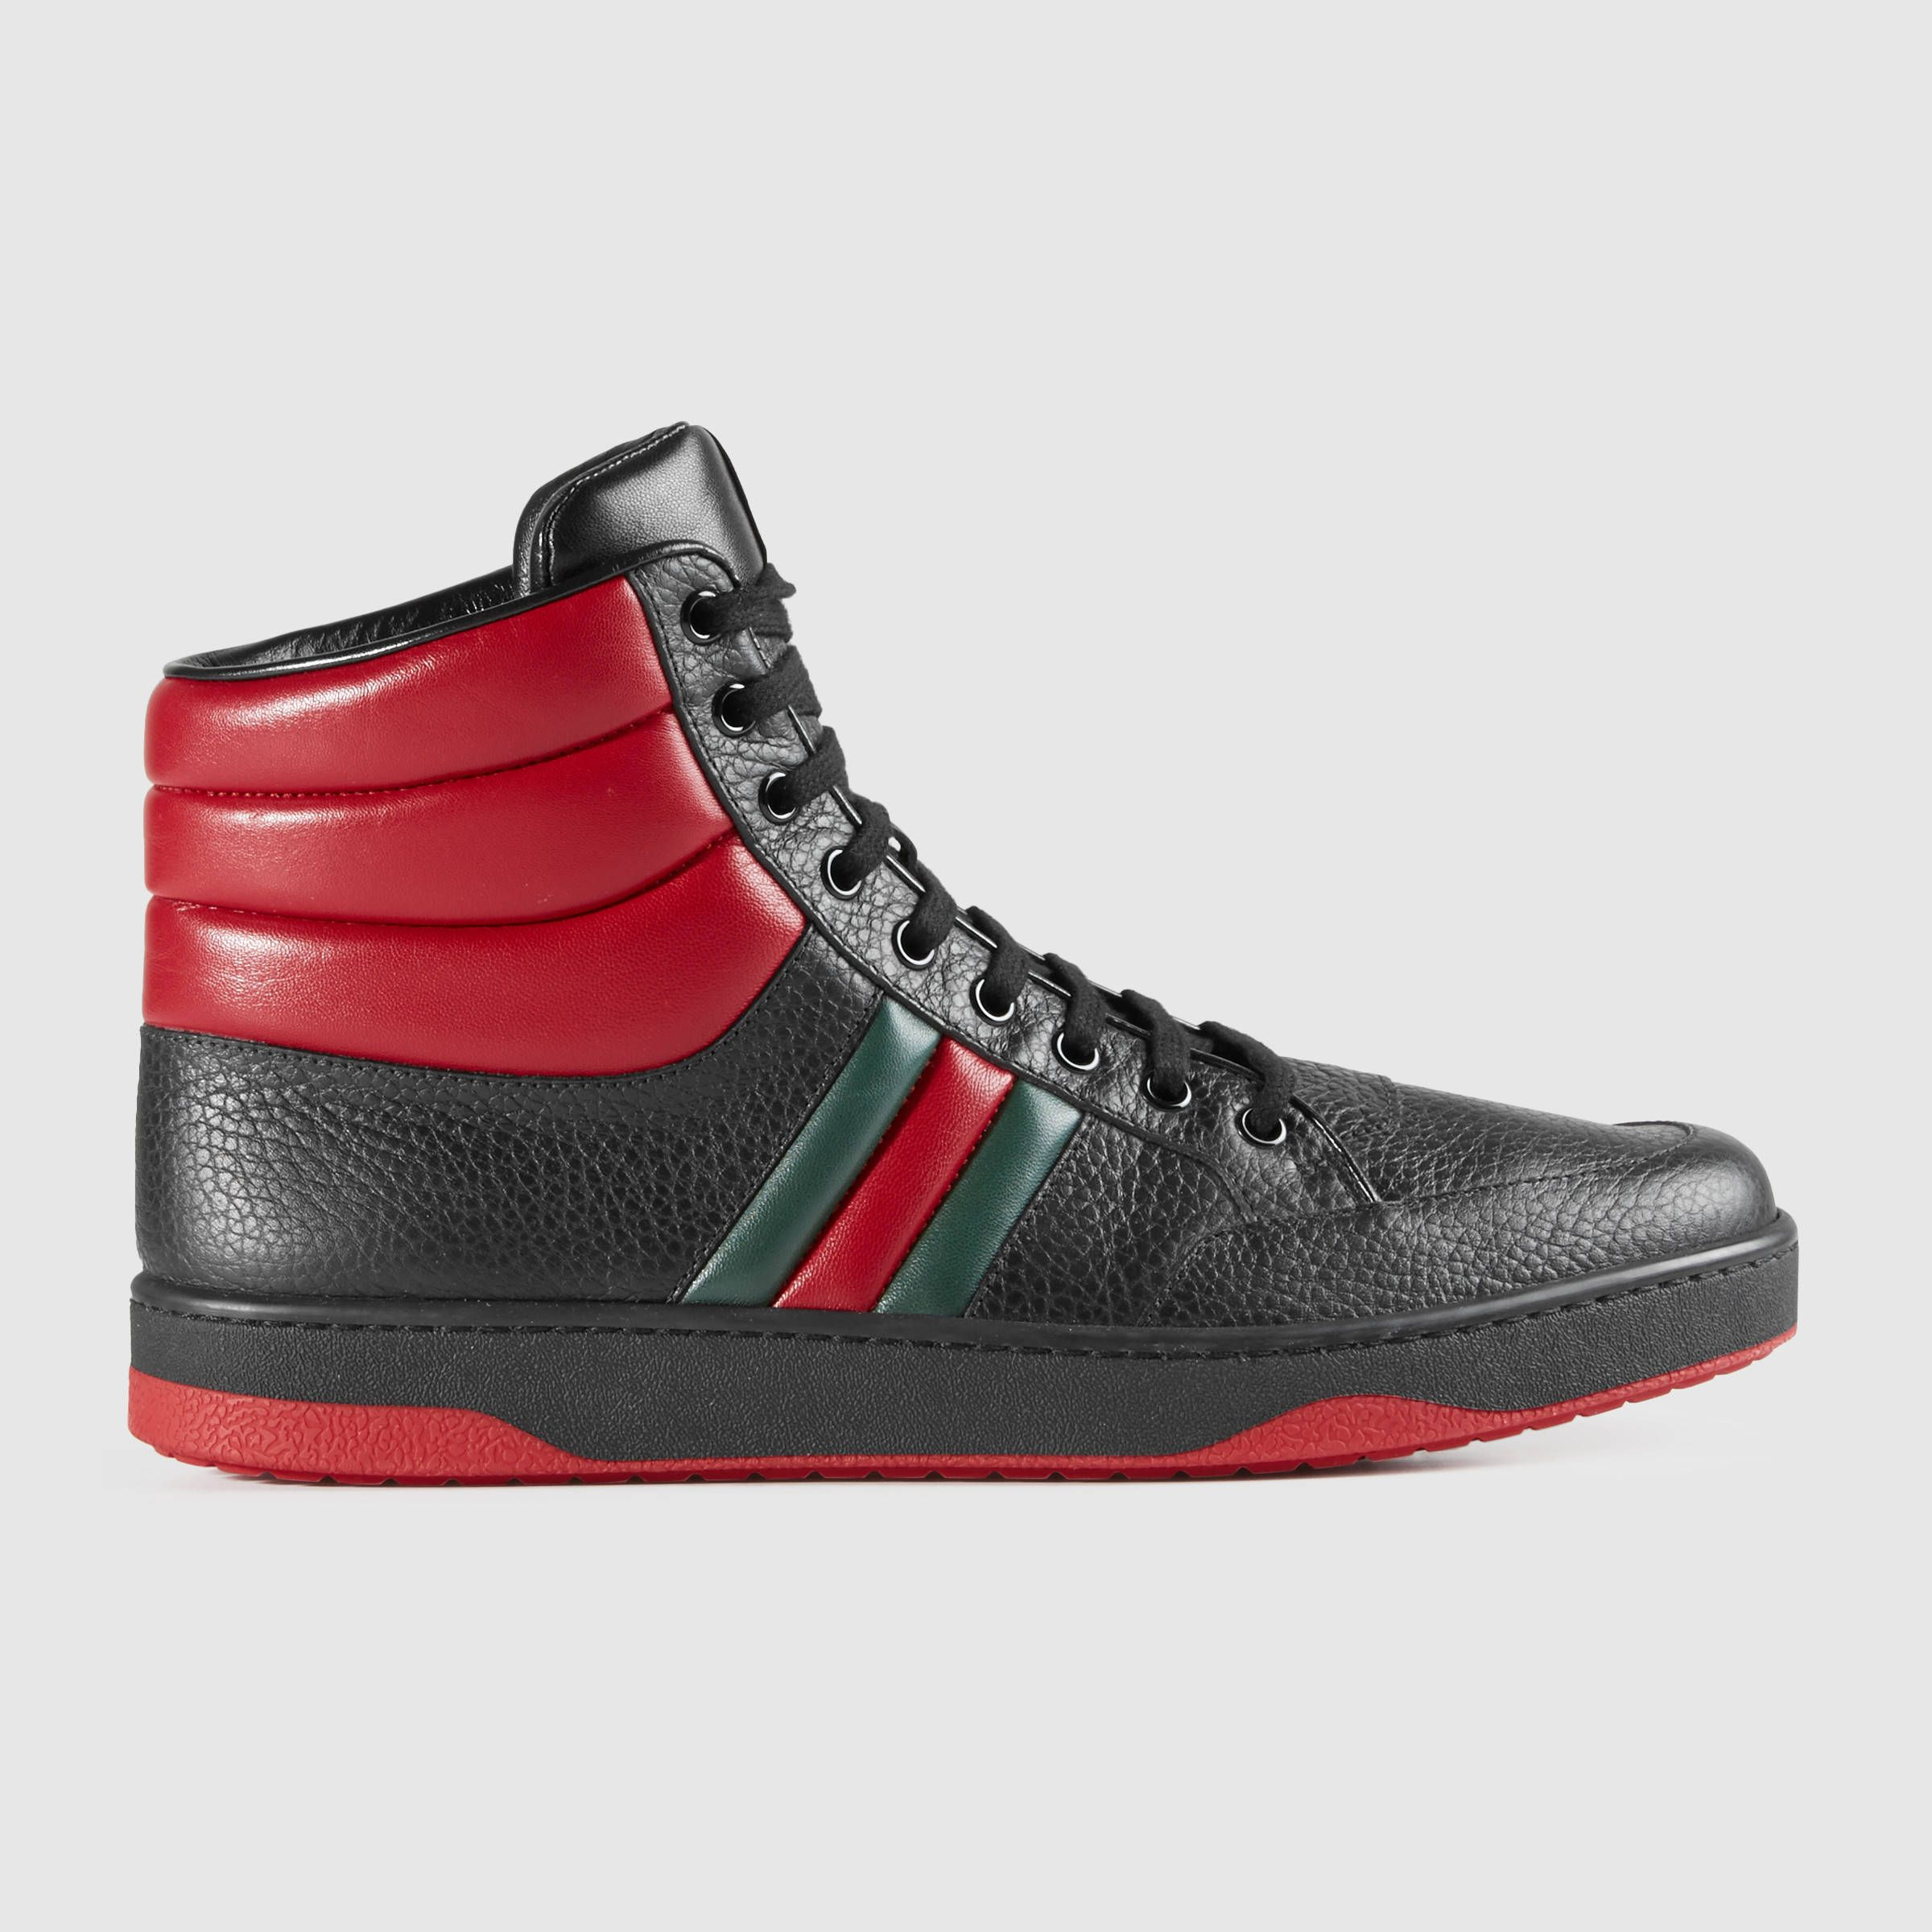 Gucci Men - Leather high-top sneaker - 368494DEF301074